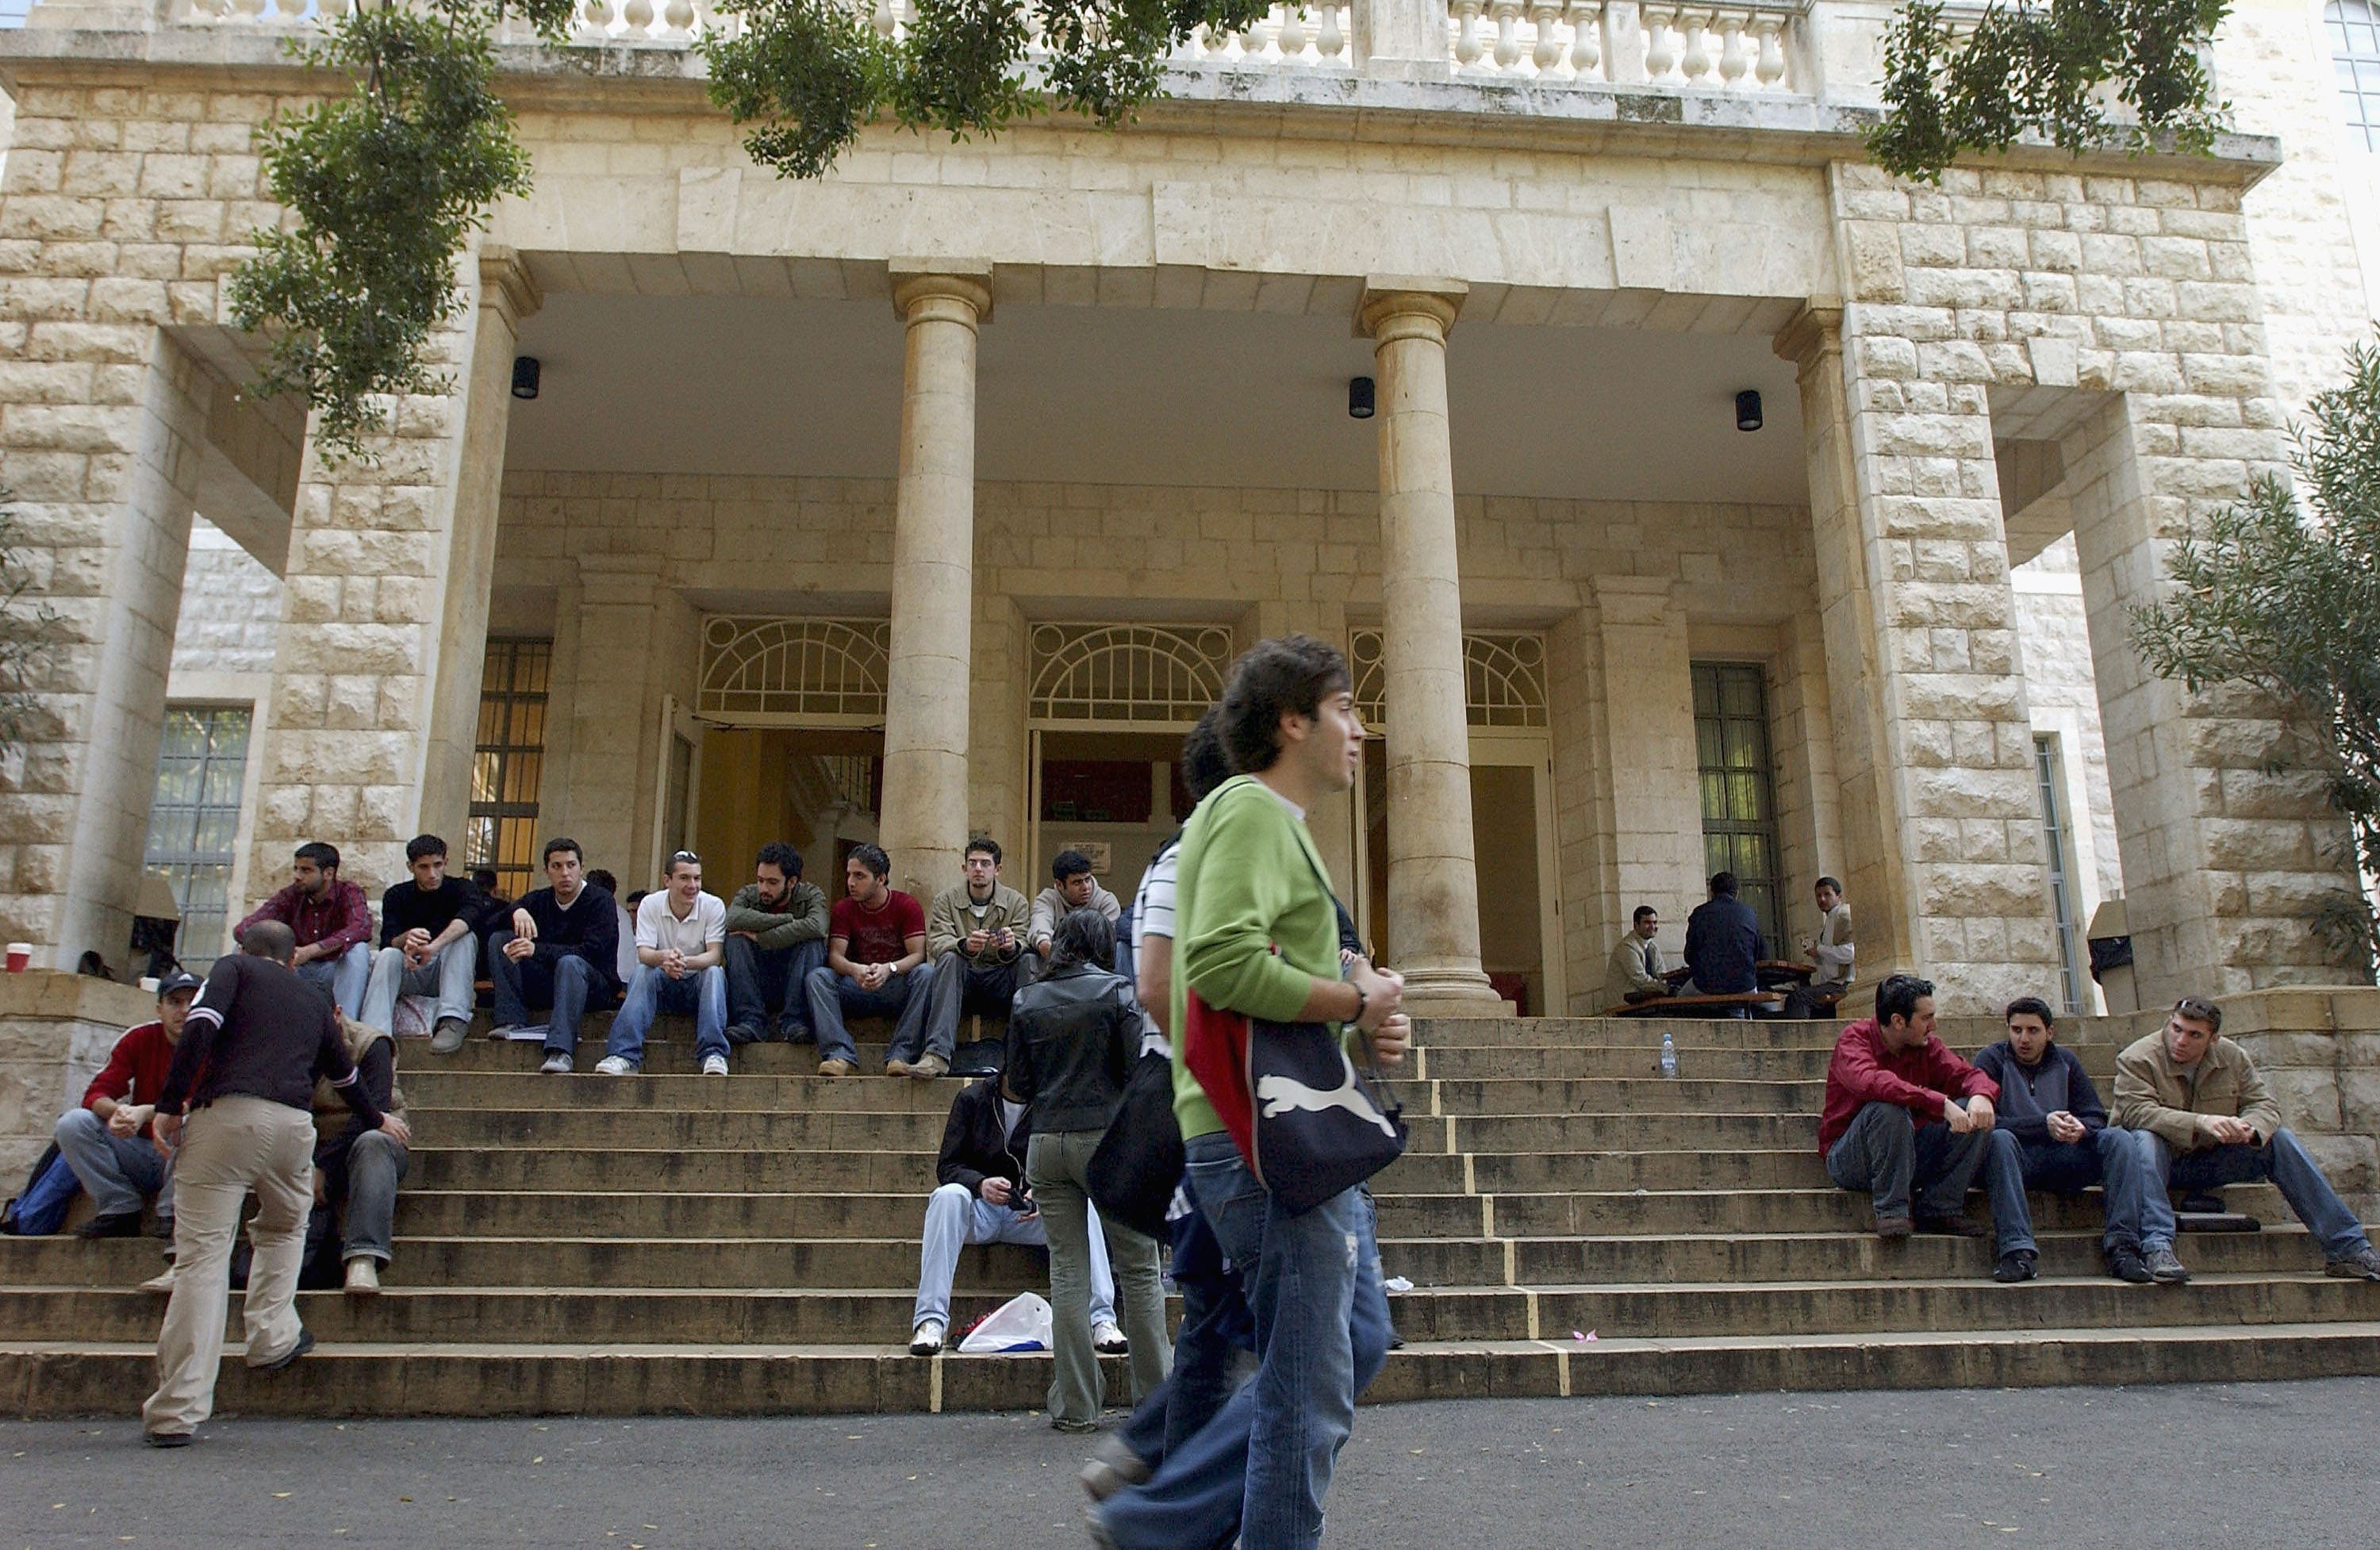 American University of Beirut: It seems while protest fever is high Arabs are resorting to this new-found weapon: they now expect fairer treatment at home and abroad.